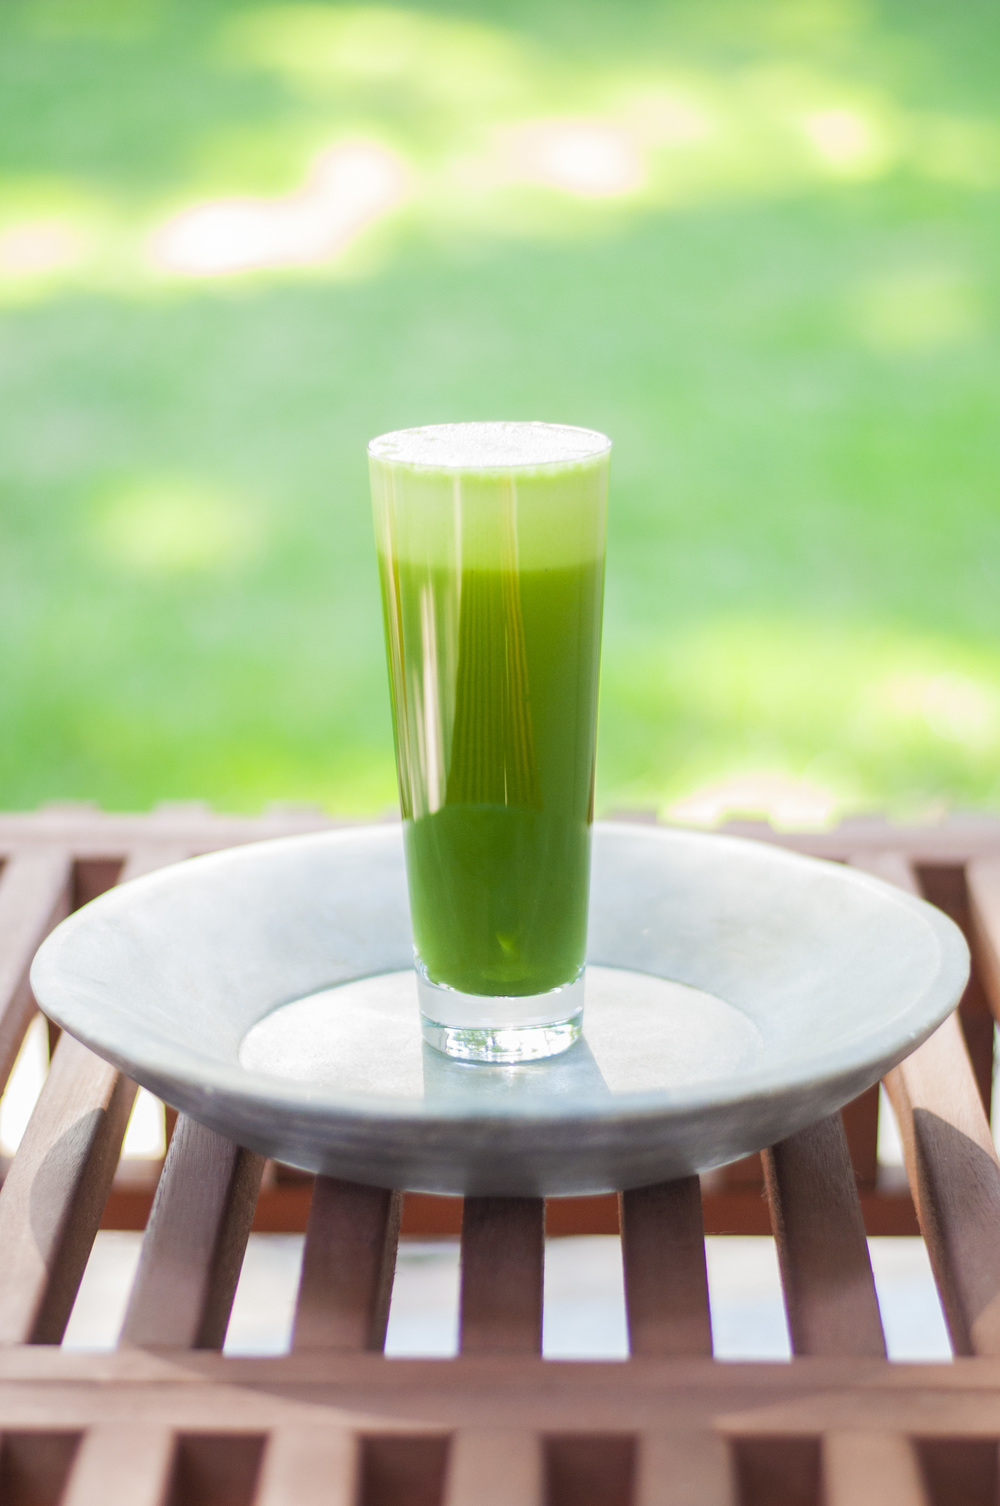 Erin Stanczyk | Lifestyle Design | eat.move.rest. | TAKE YOUR HEALTH TO THE NEXT LEVEL WITH SMOOTHIES + JUICES PART 4: MY 'GREEN MACHINE' DETOX JUICE RECIPE